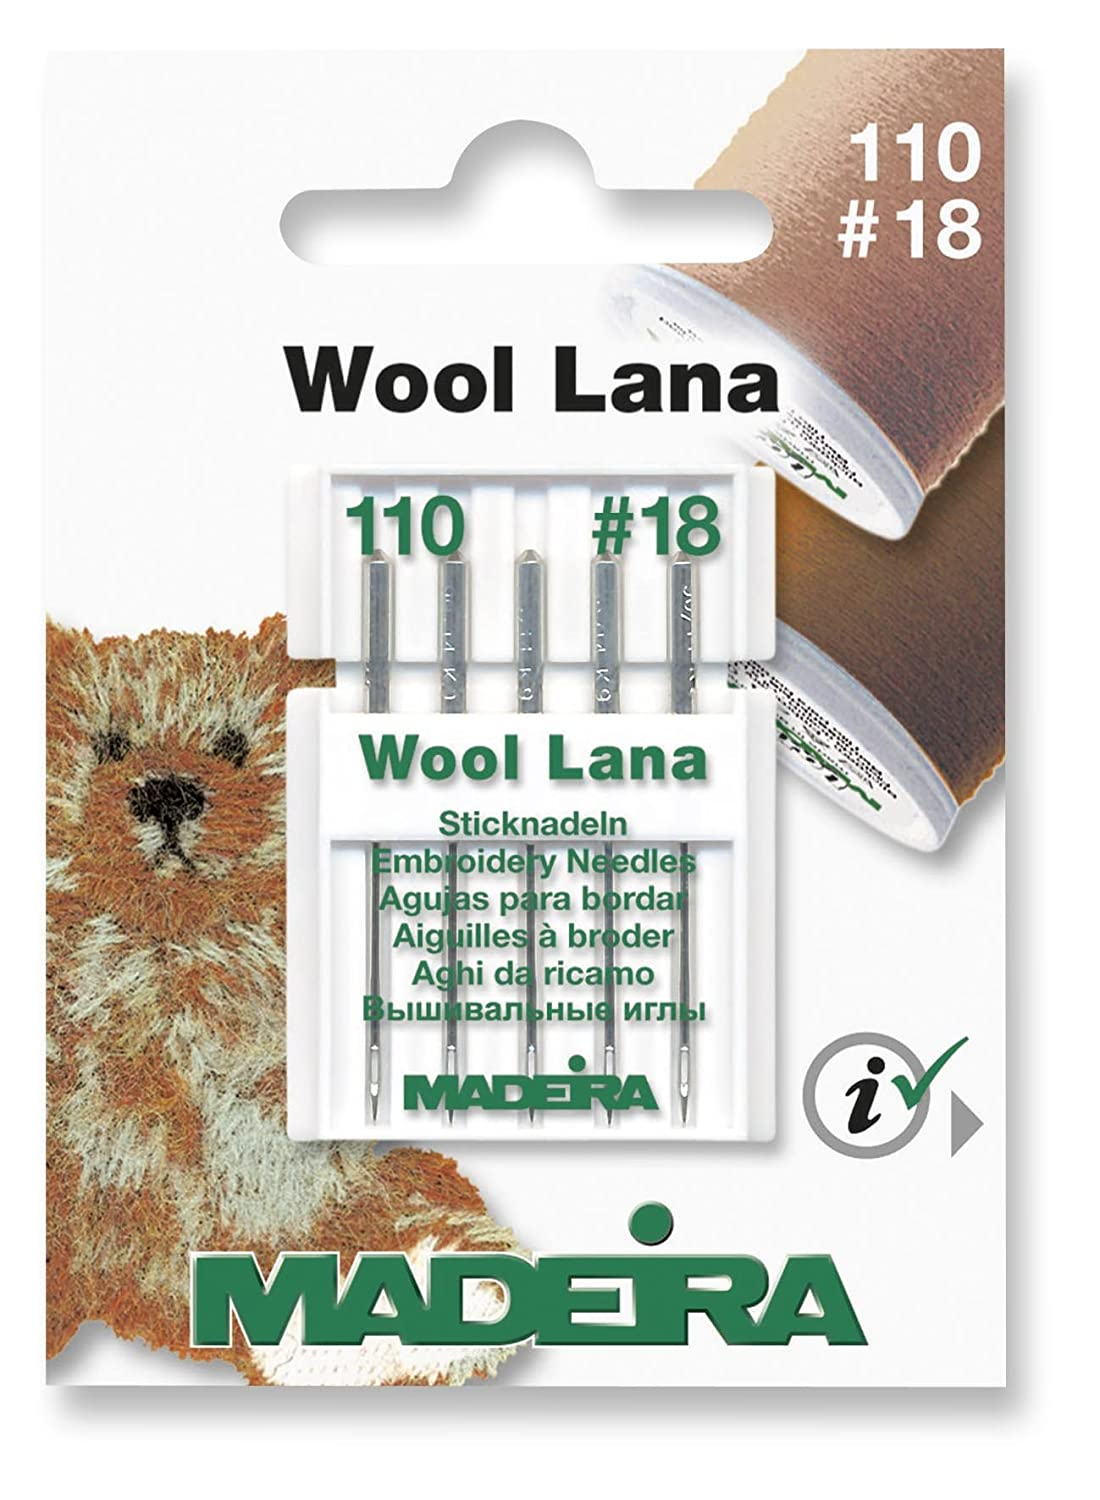 Madeira WOOL LANA Machine Needles Pack 5 Size 110/18 - For All Home Sewing Machines